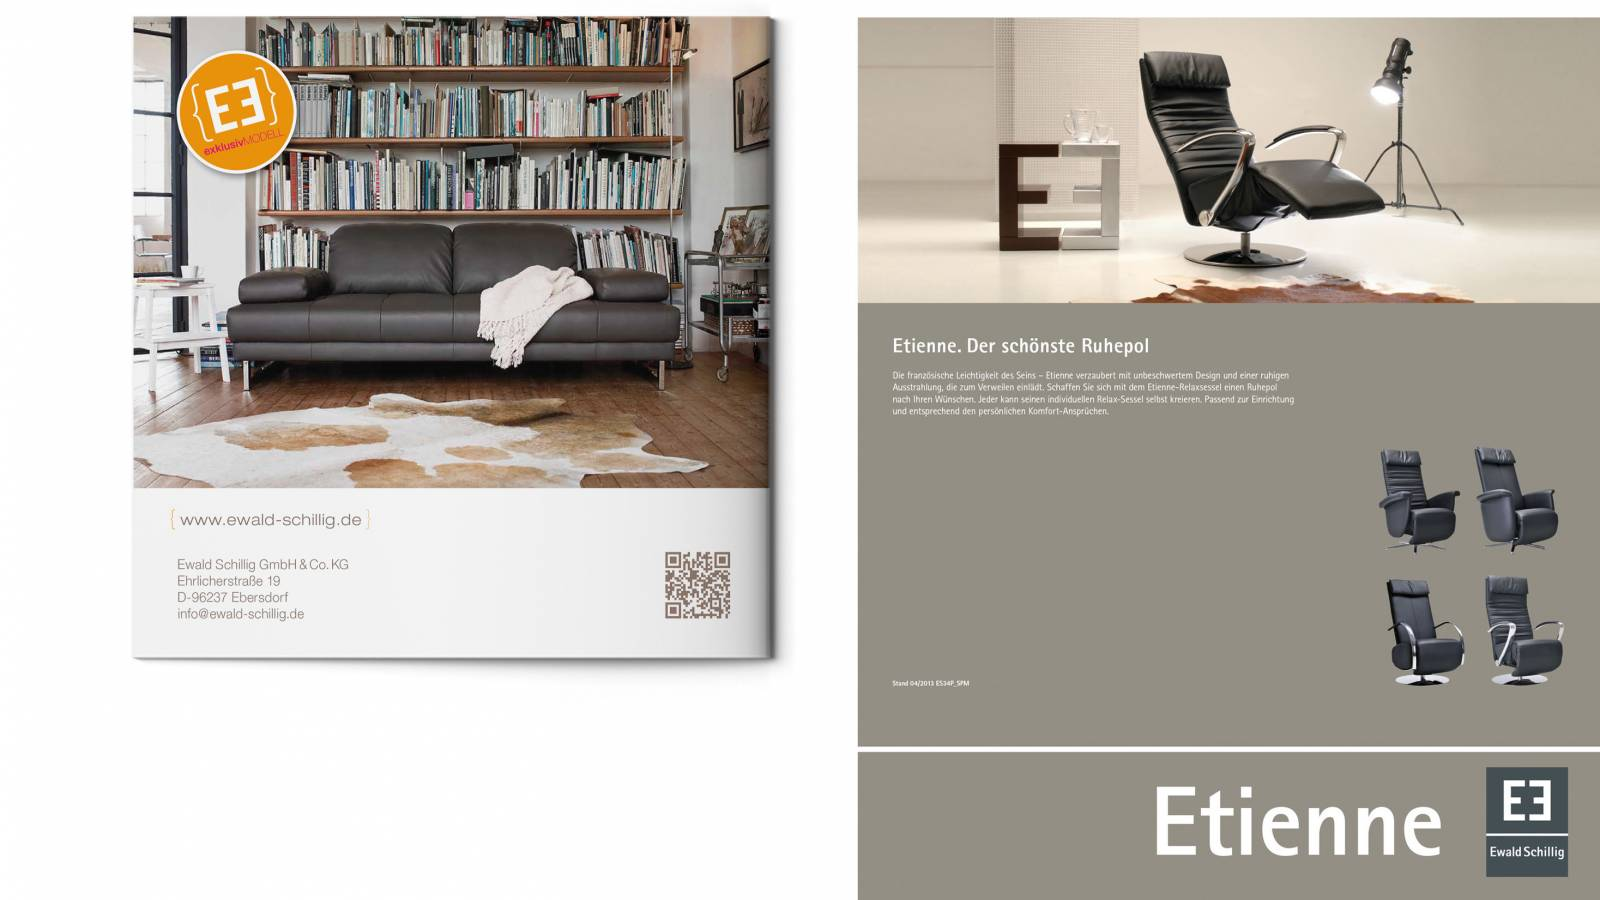 ETPTT, Ewald Schillig, dtp, layout, typesetting, final artwork, image editing